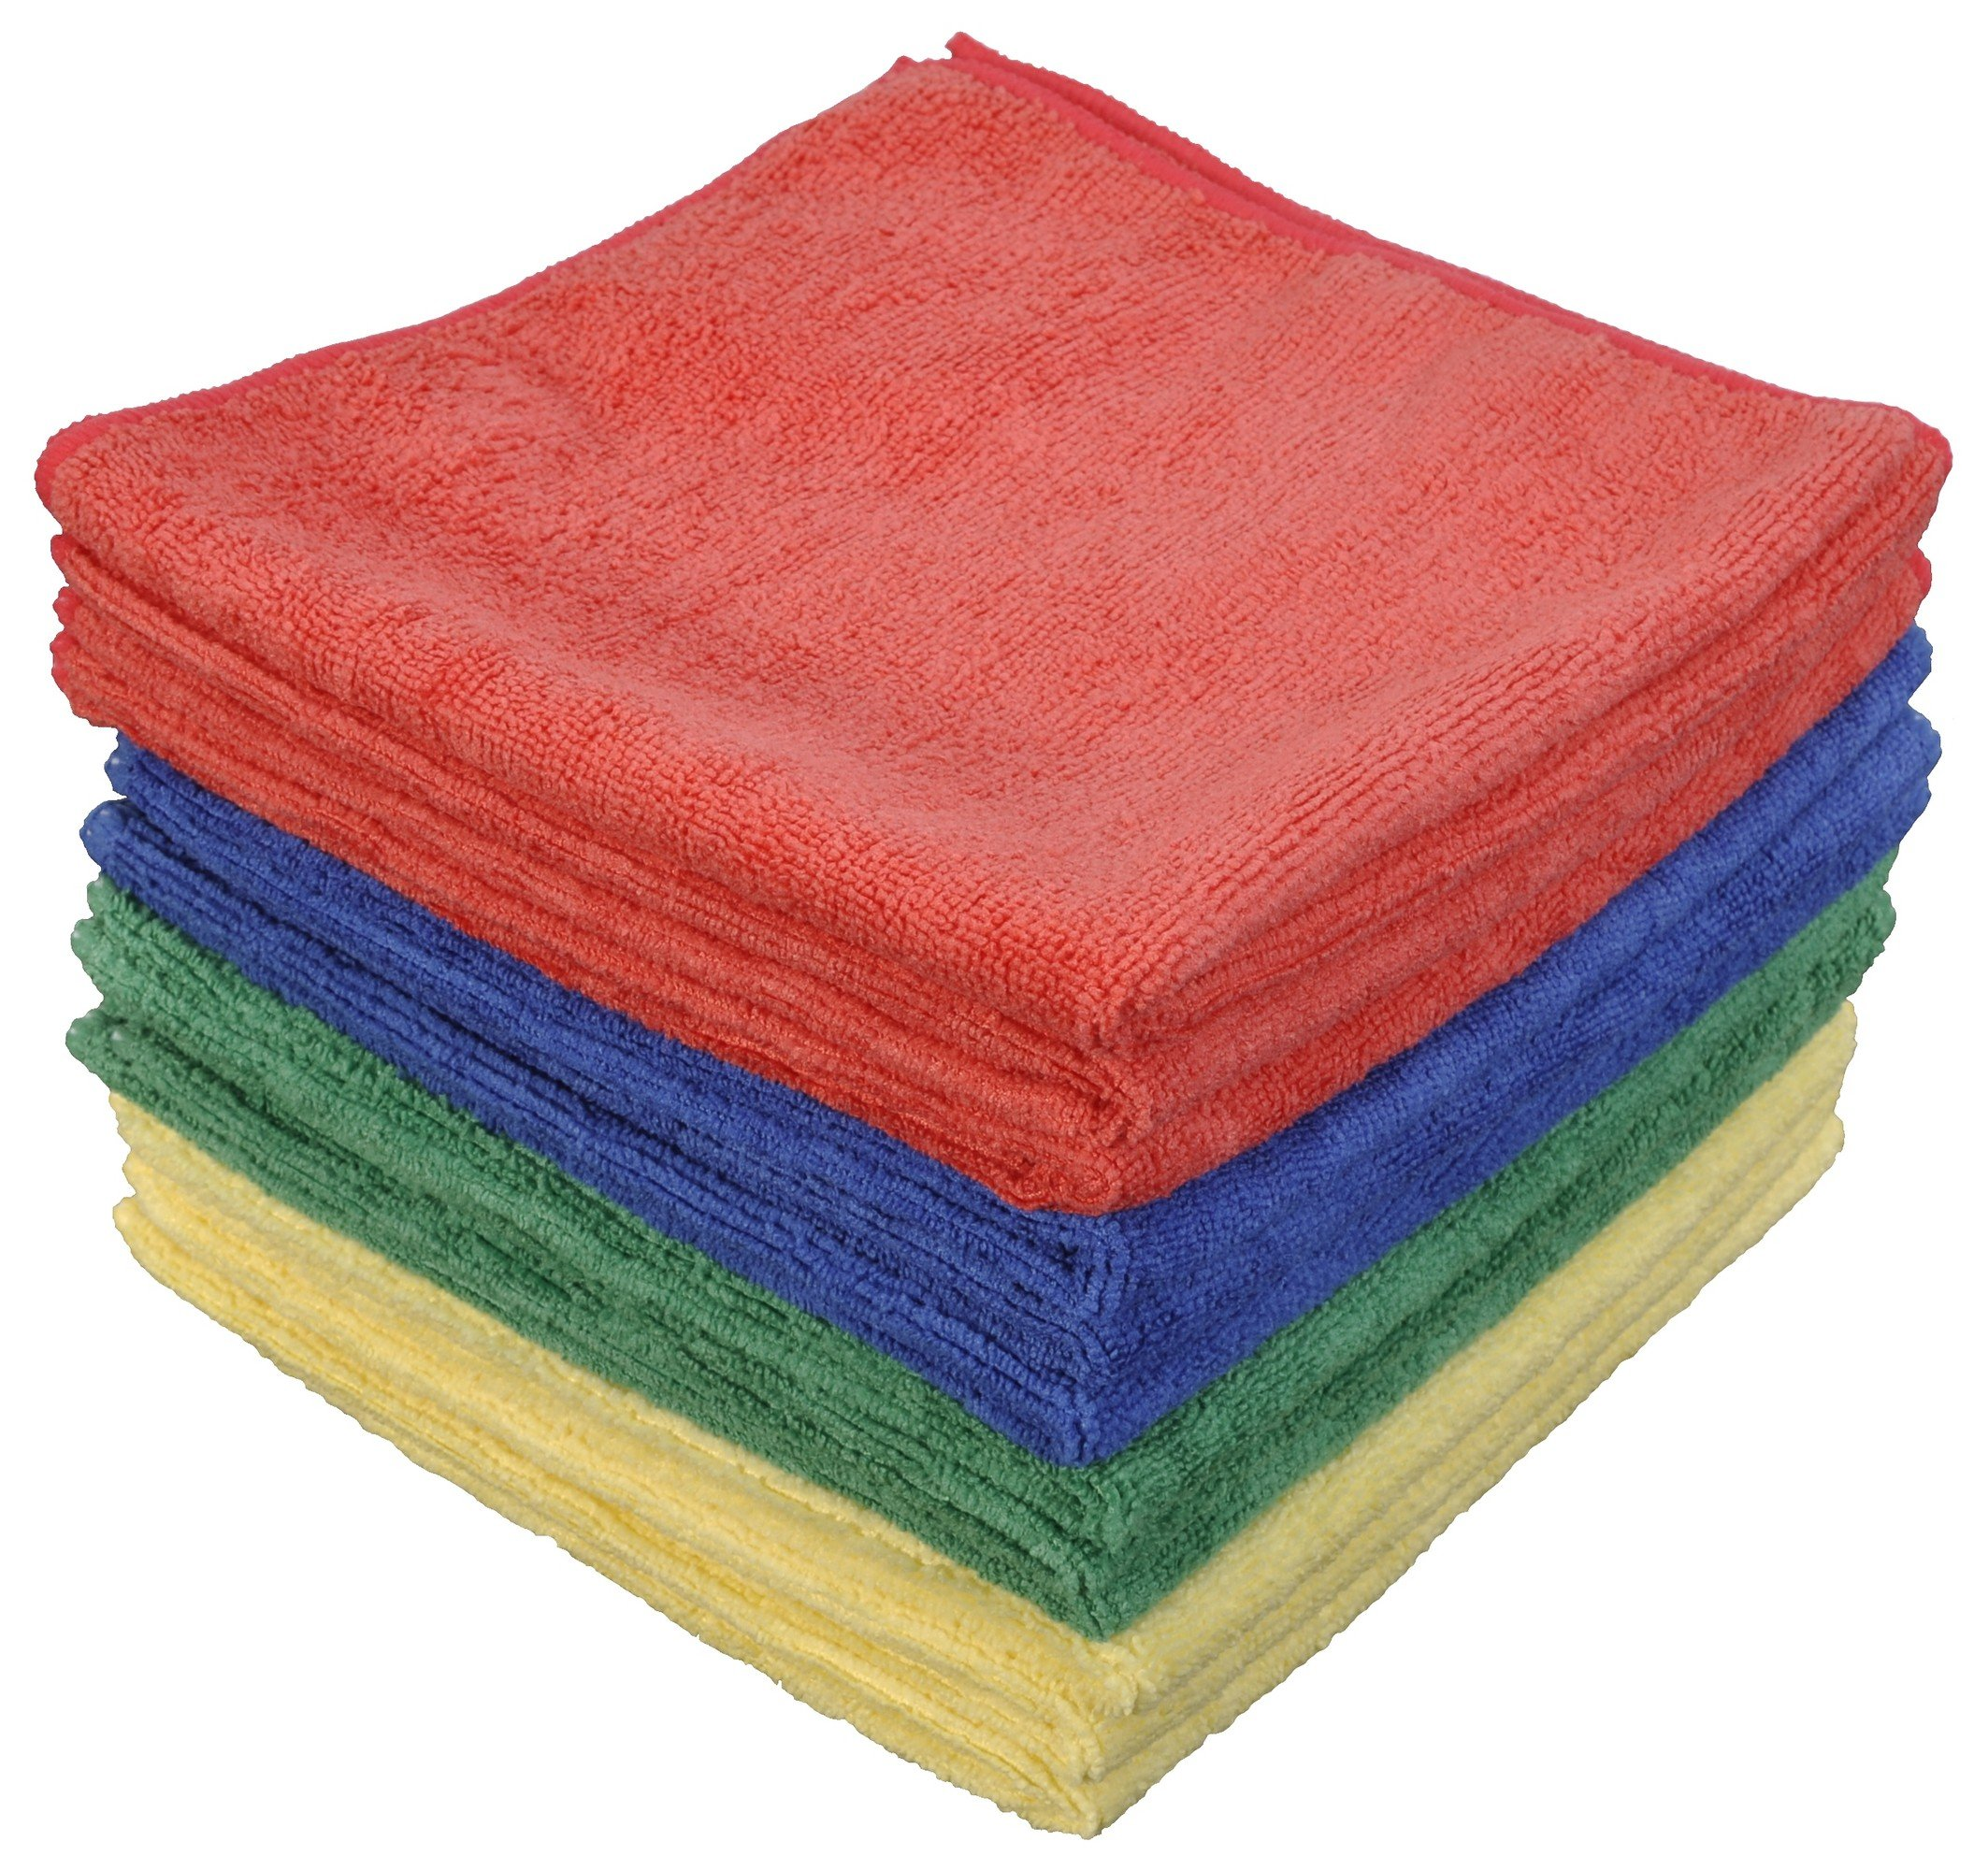 CleanAide Eurow Microfiber Commercial Fast Dry Towels 16 x 16 Inches 300 GSM 12-pack 4 colors